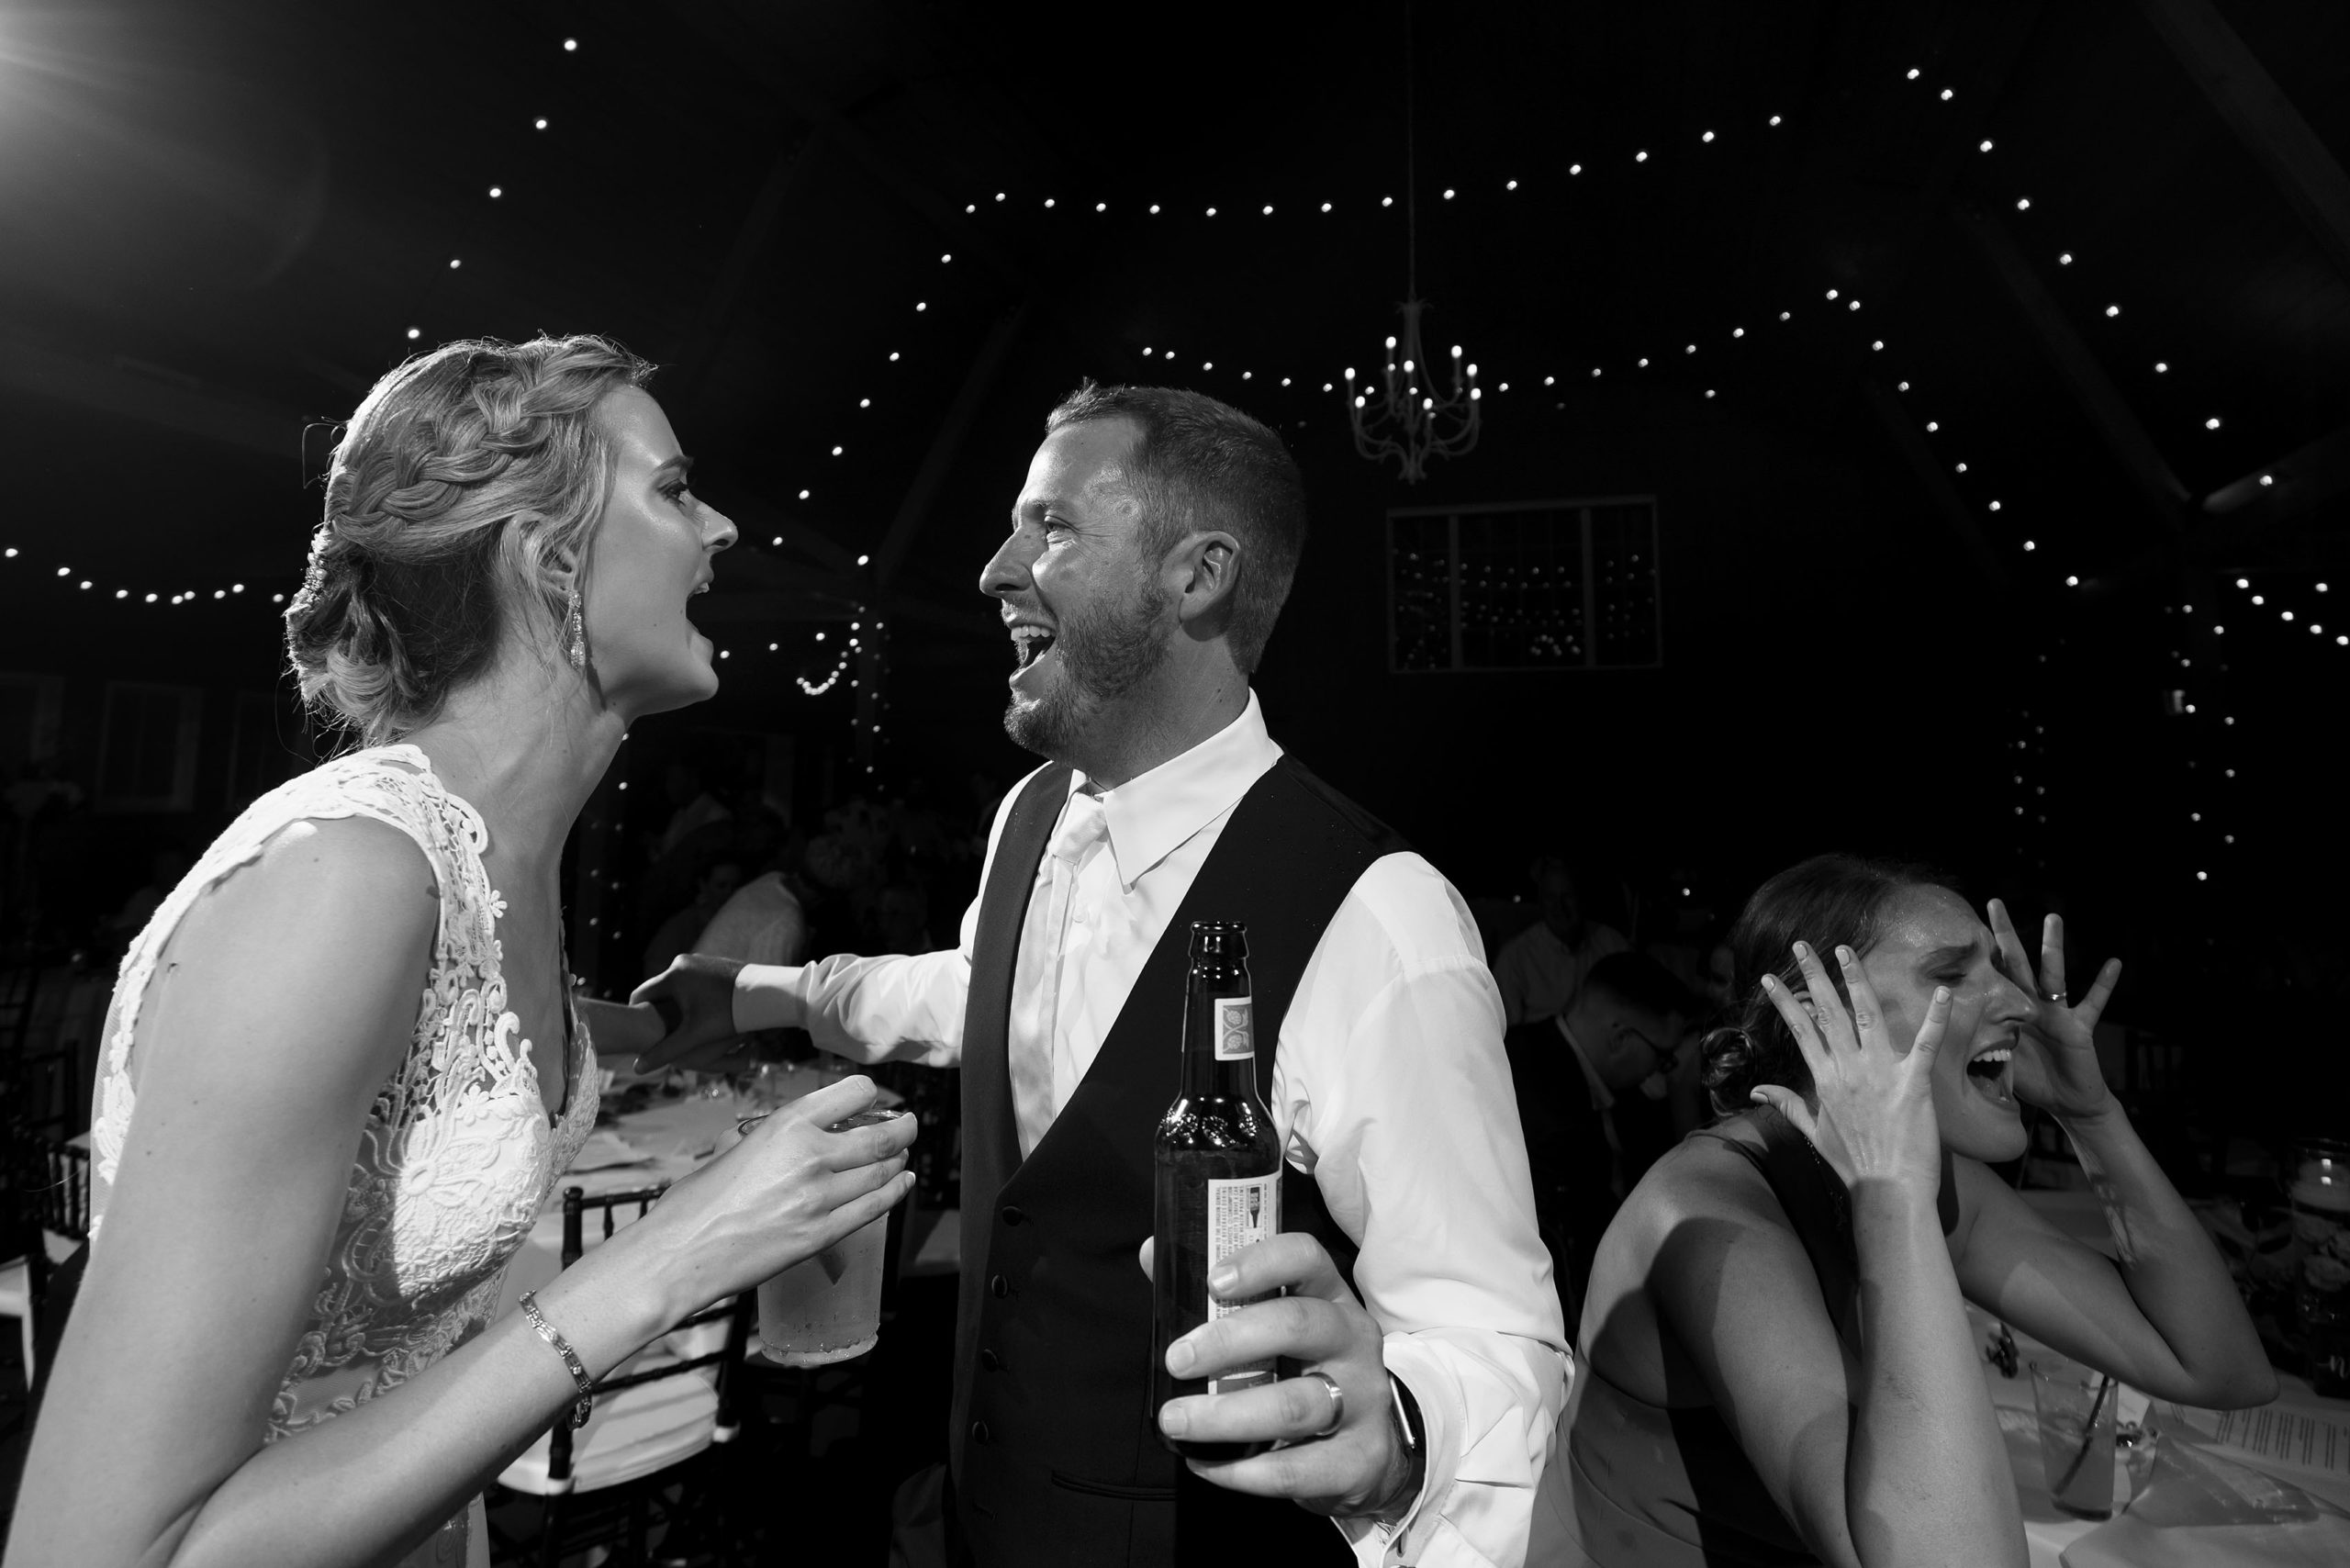 guests dance during a wedding reception at the barn at raccoon creek